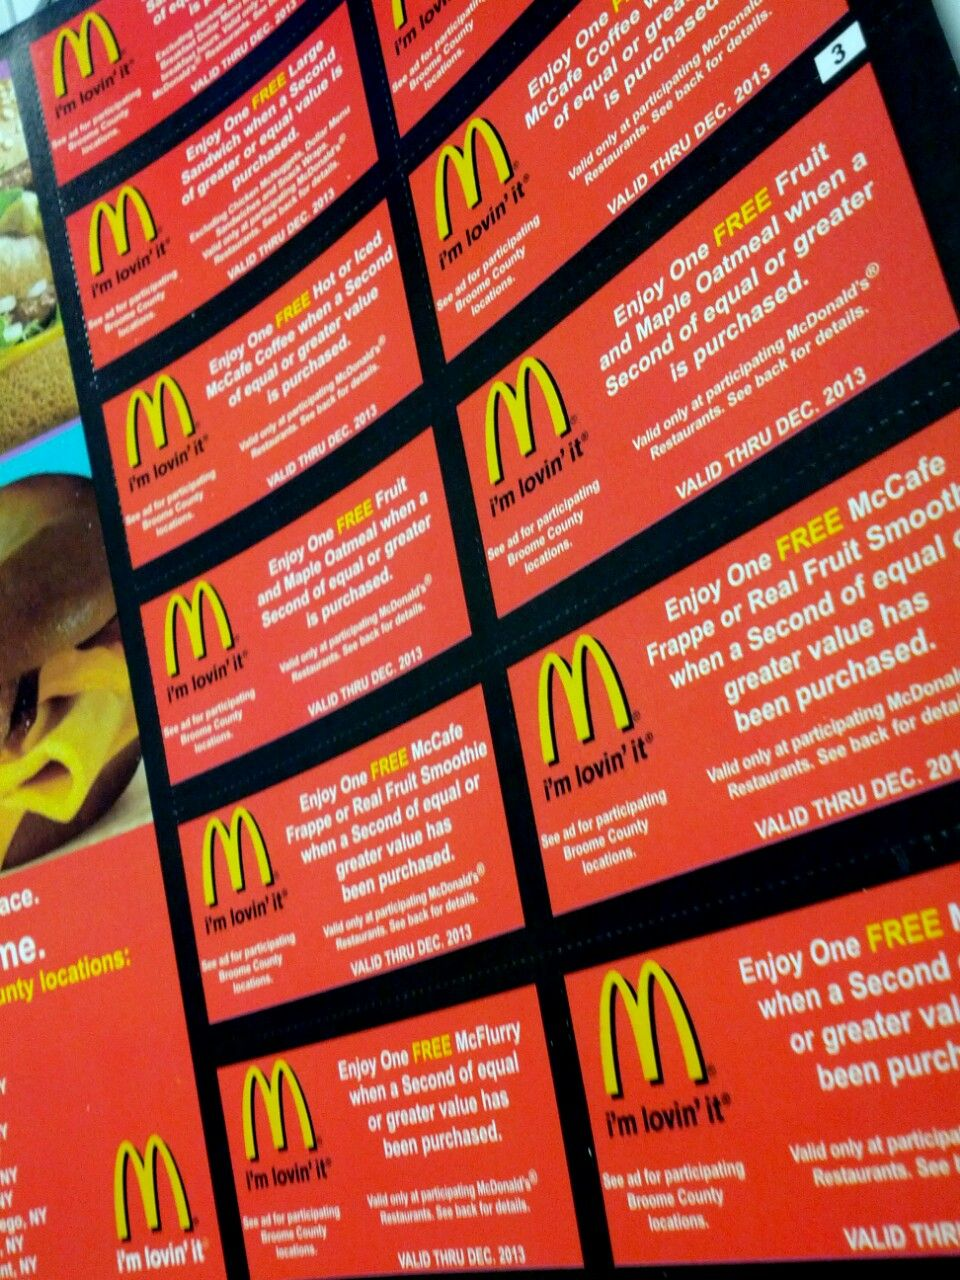 Coupons have become everyones favorite these days and everyones mcdonalds coupons from savearound broome county 2013 coupon book xflitez Images